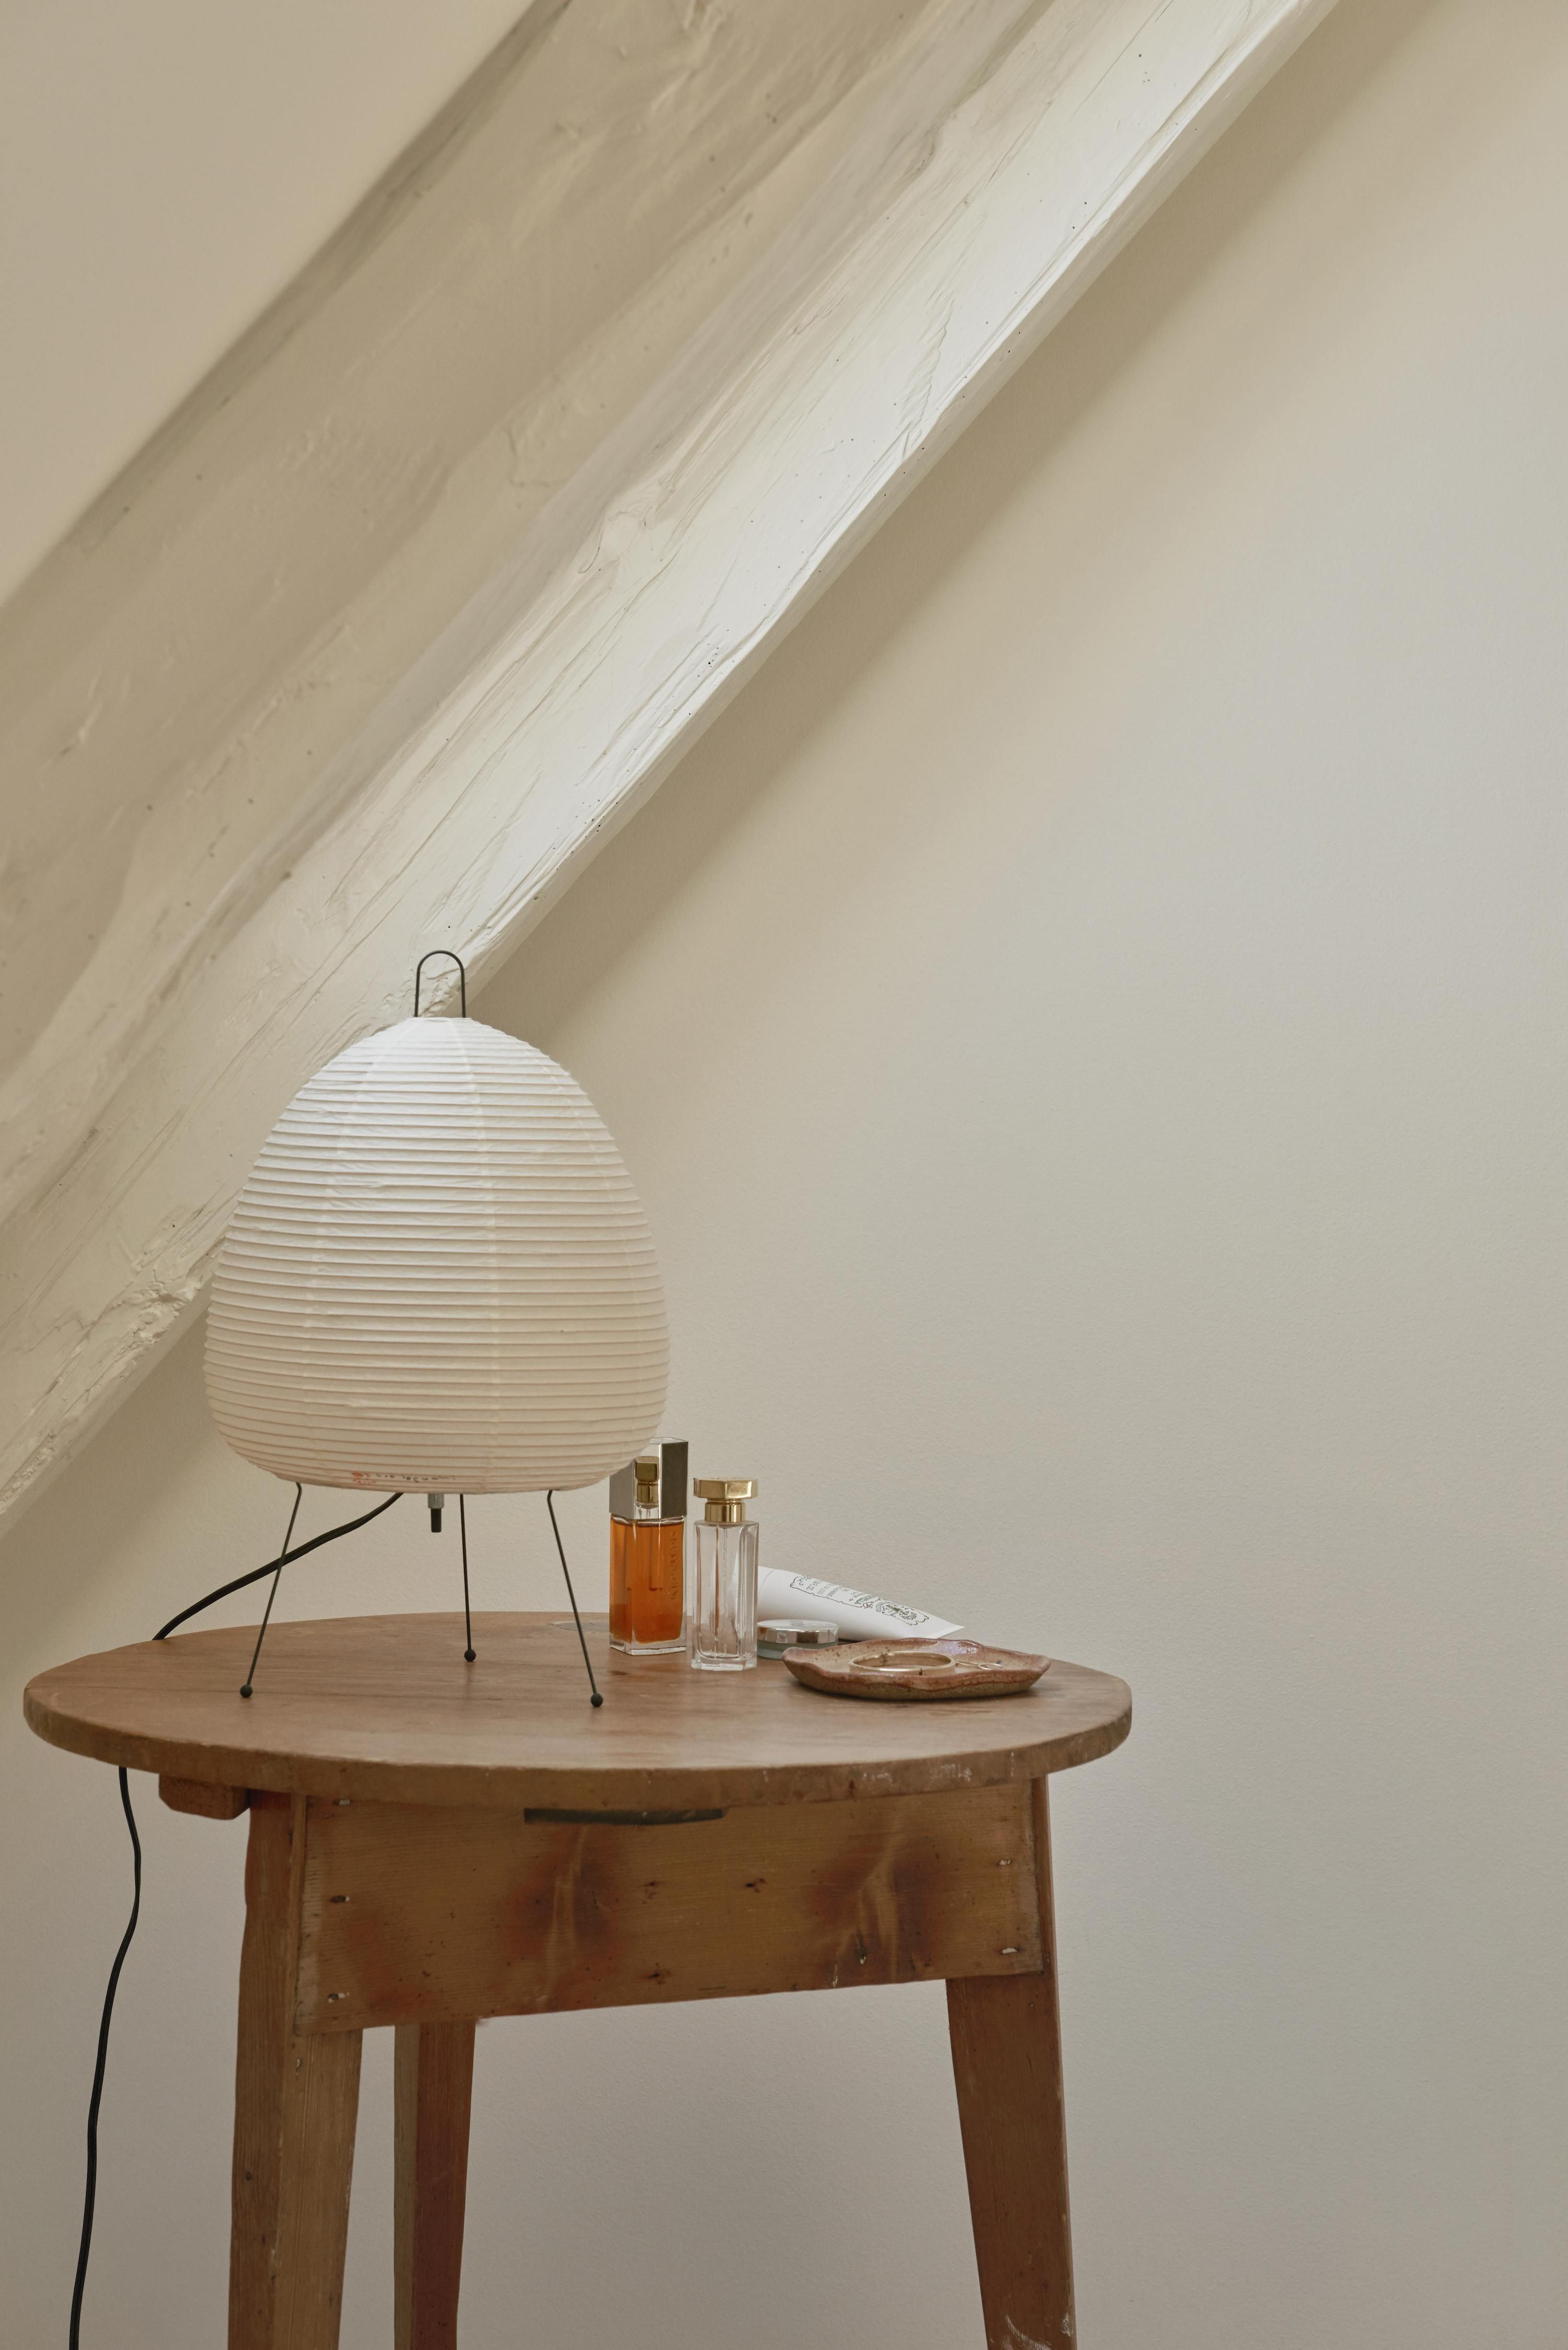 Noguchi Akari 1a Table Lamp Vintage Table Lamp Modern Lamp Round Wood Table